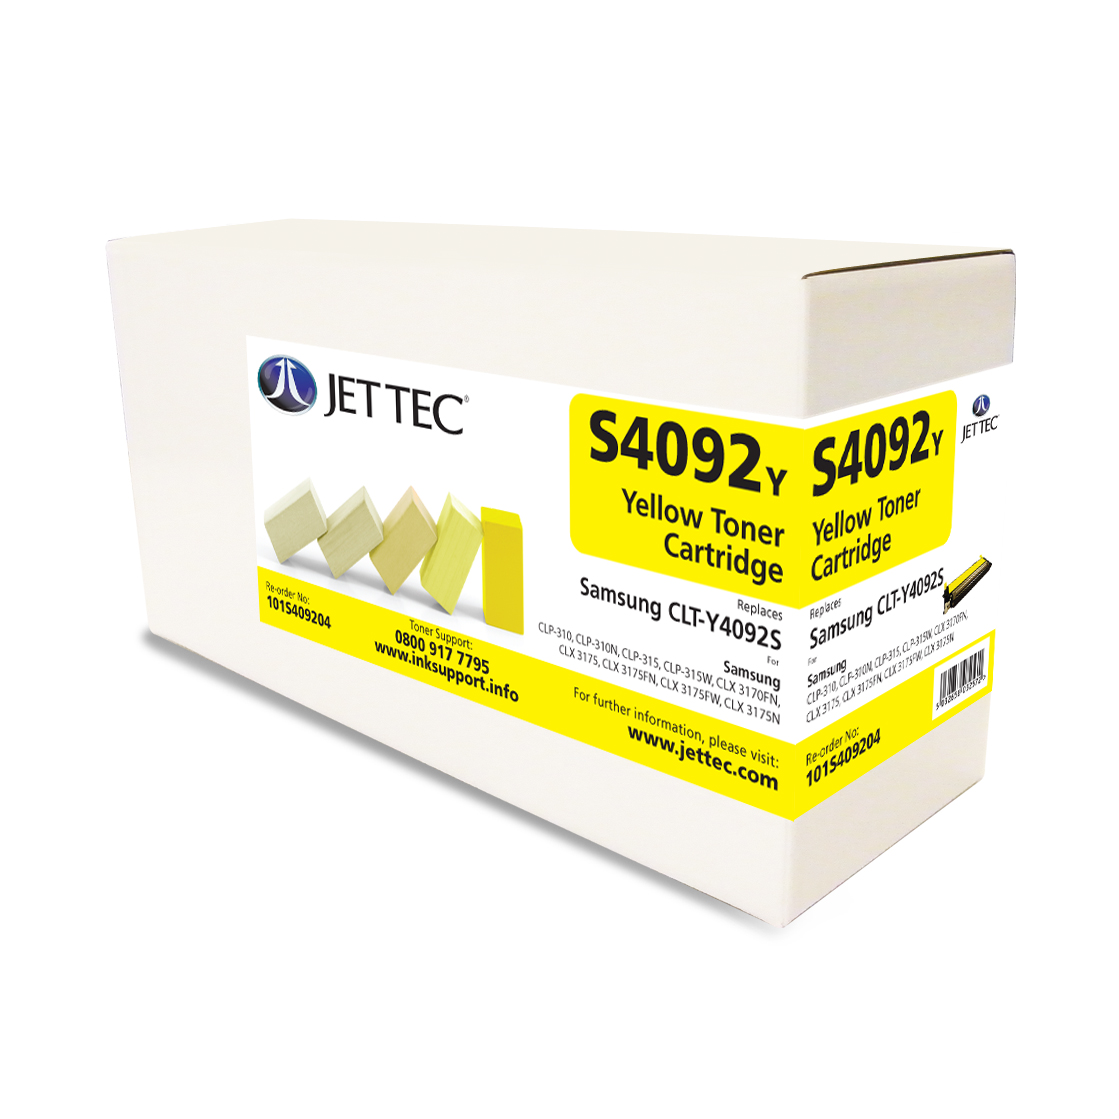 Jet Tec S4092Y remanufactured yellow Samsung CLT-Y4092S laser toners